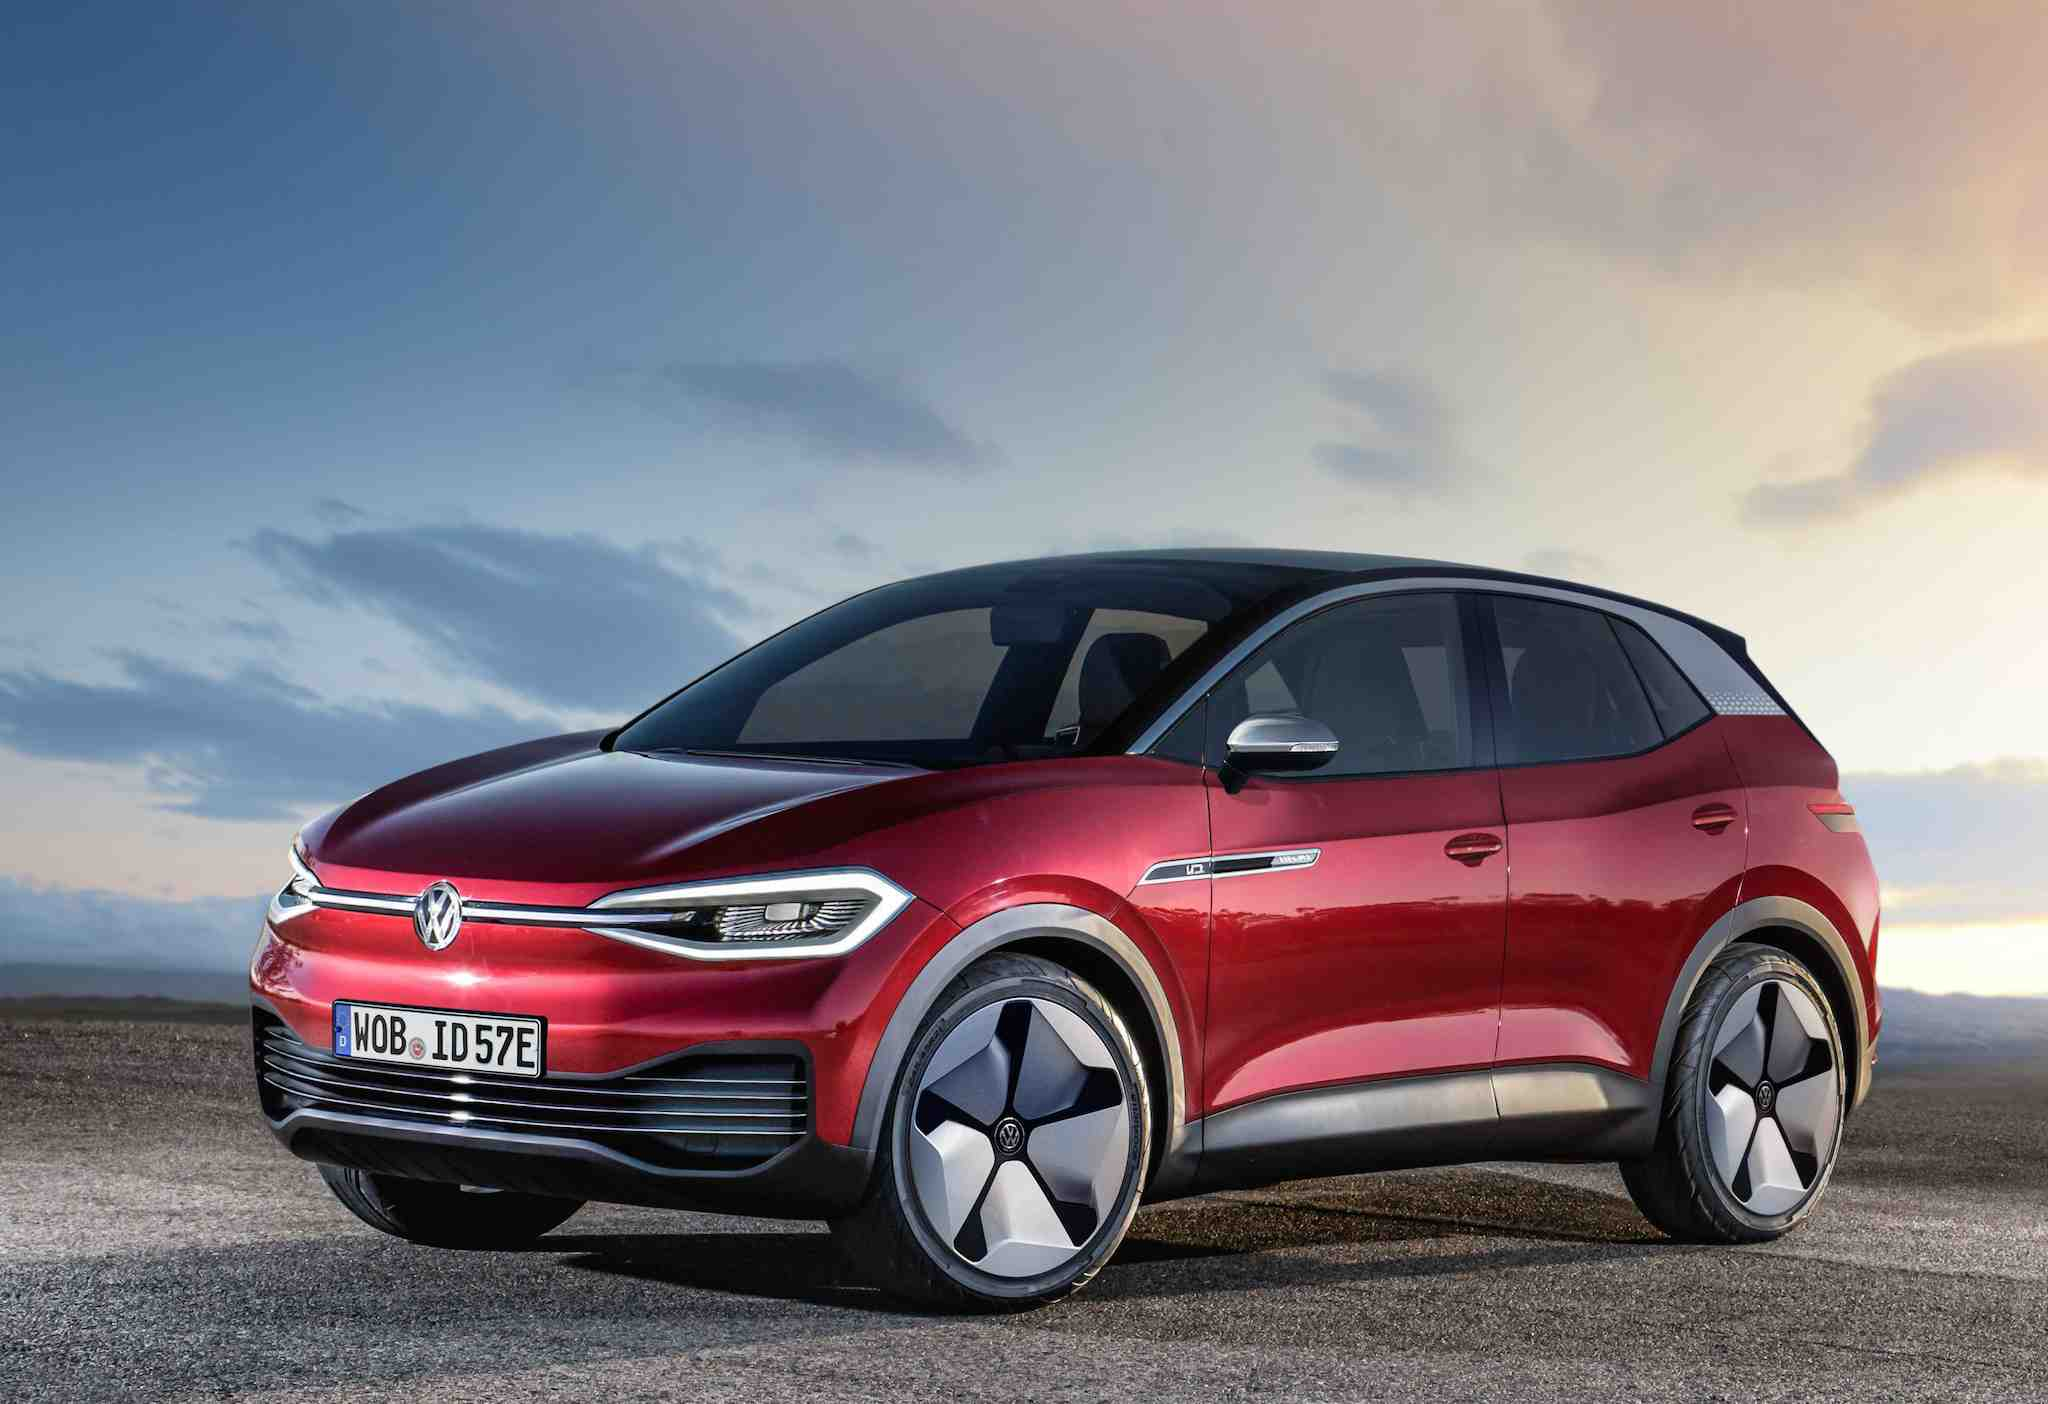 41 All New Volkswagen Elbil 2020 Redesign And Concept